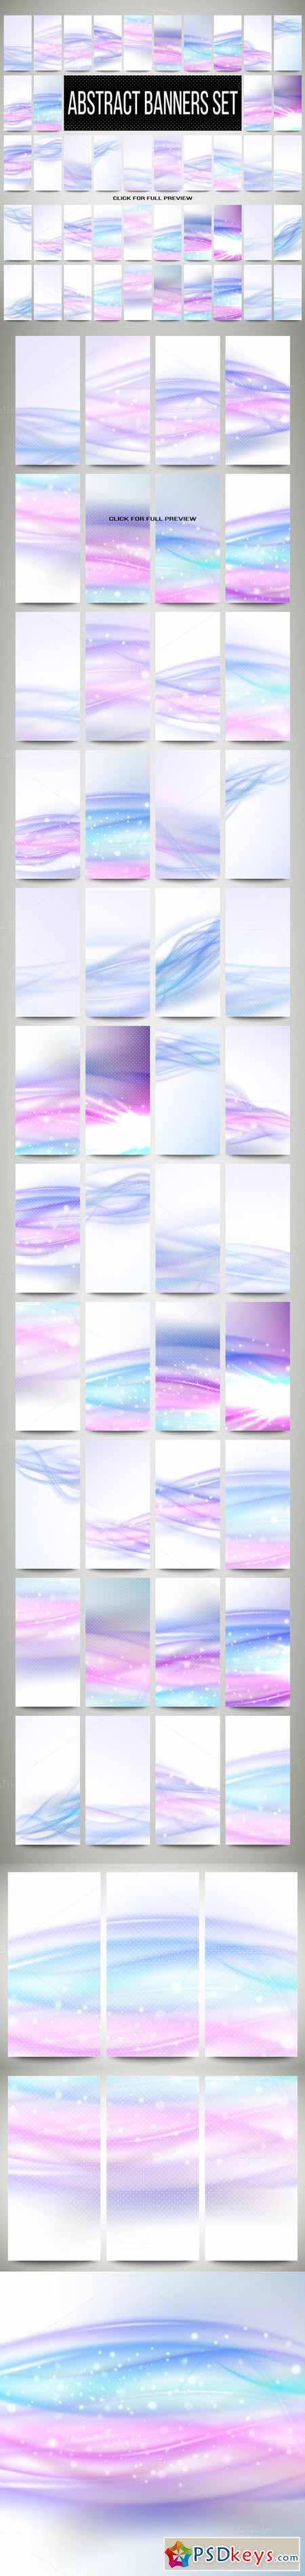 Abstract banners set 181481